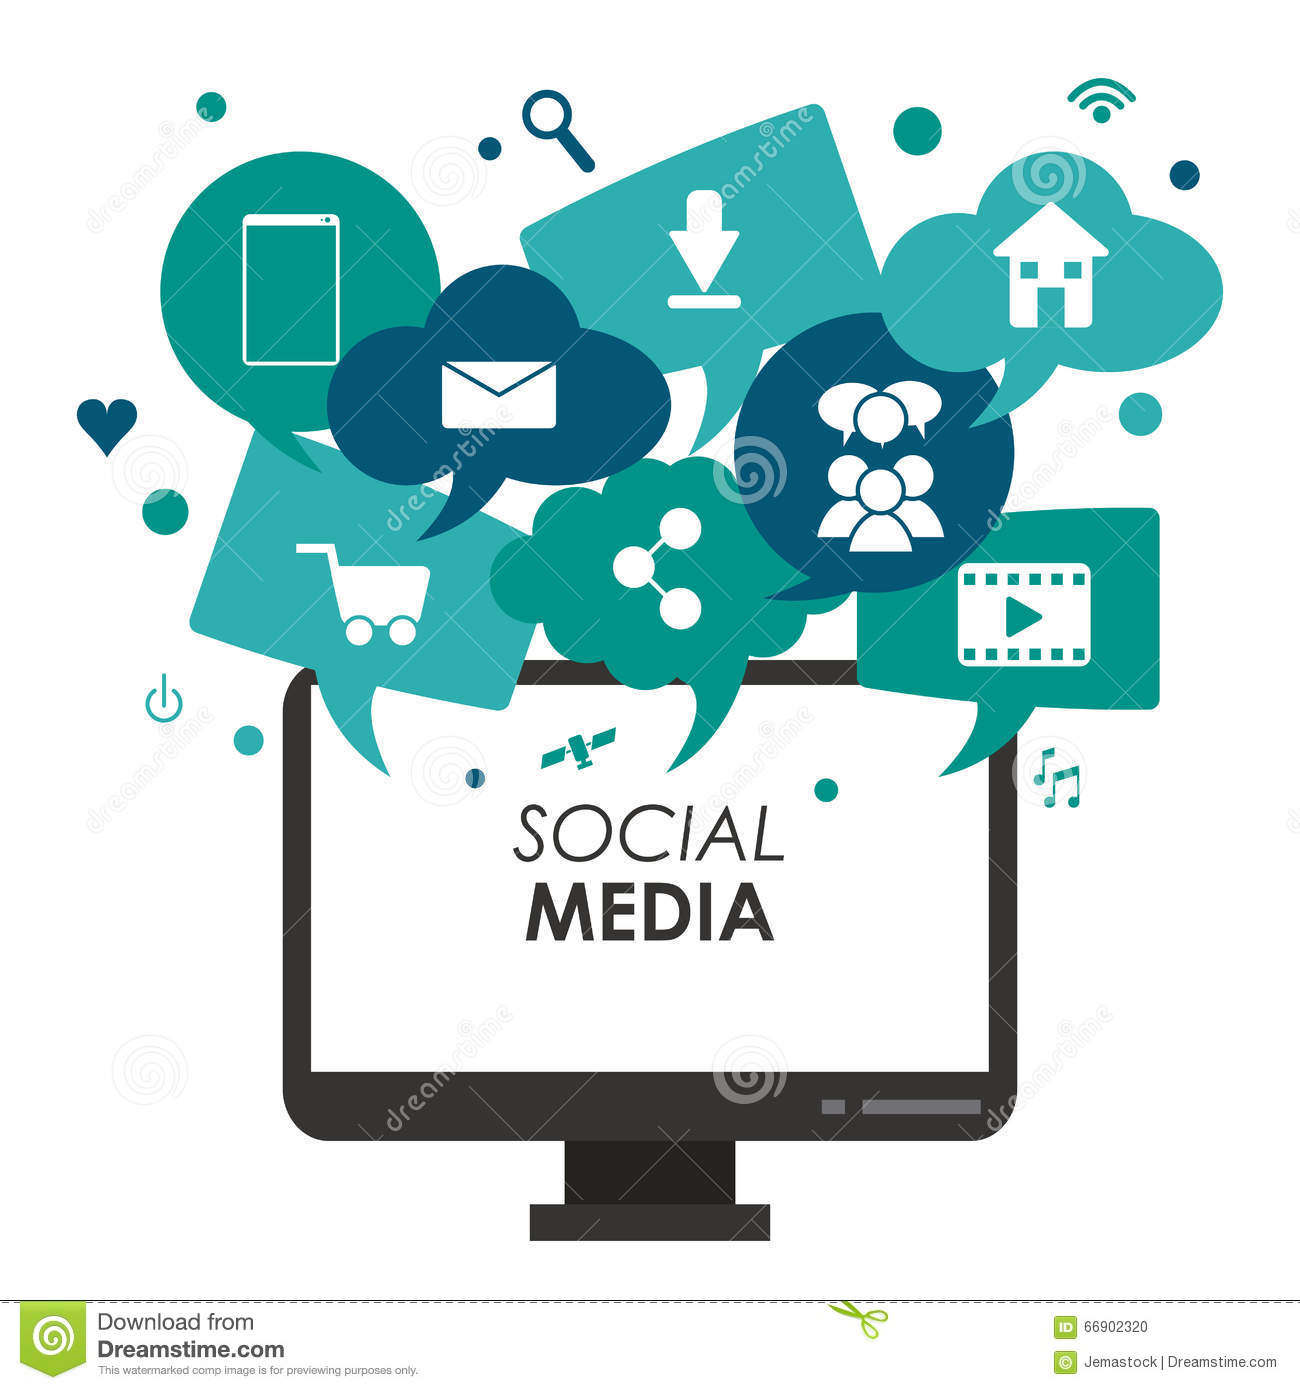 Social Media Design Stock Vector - Image: 66902320